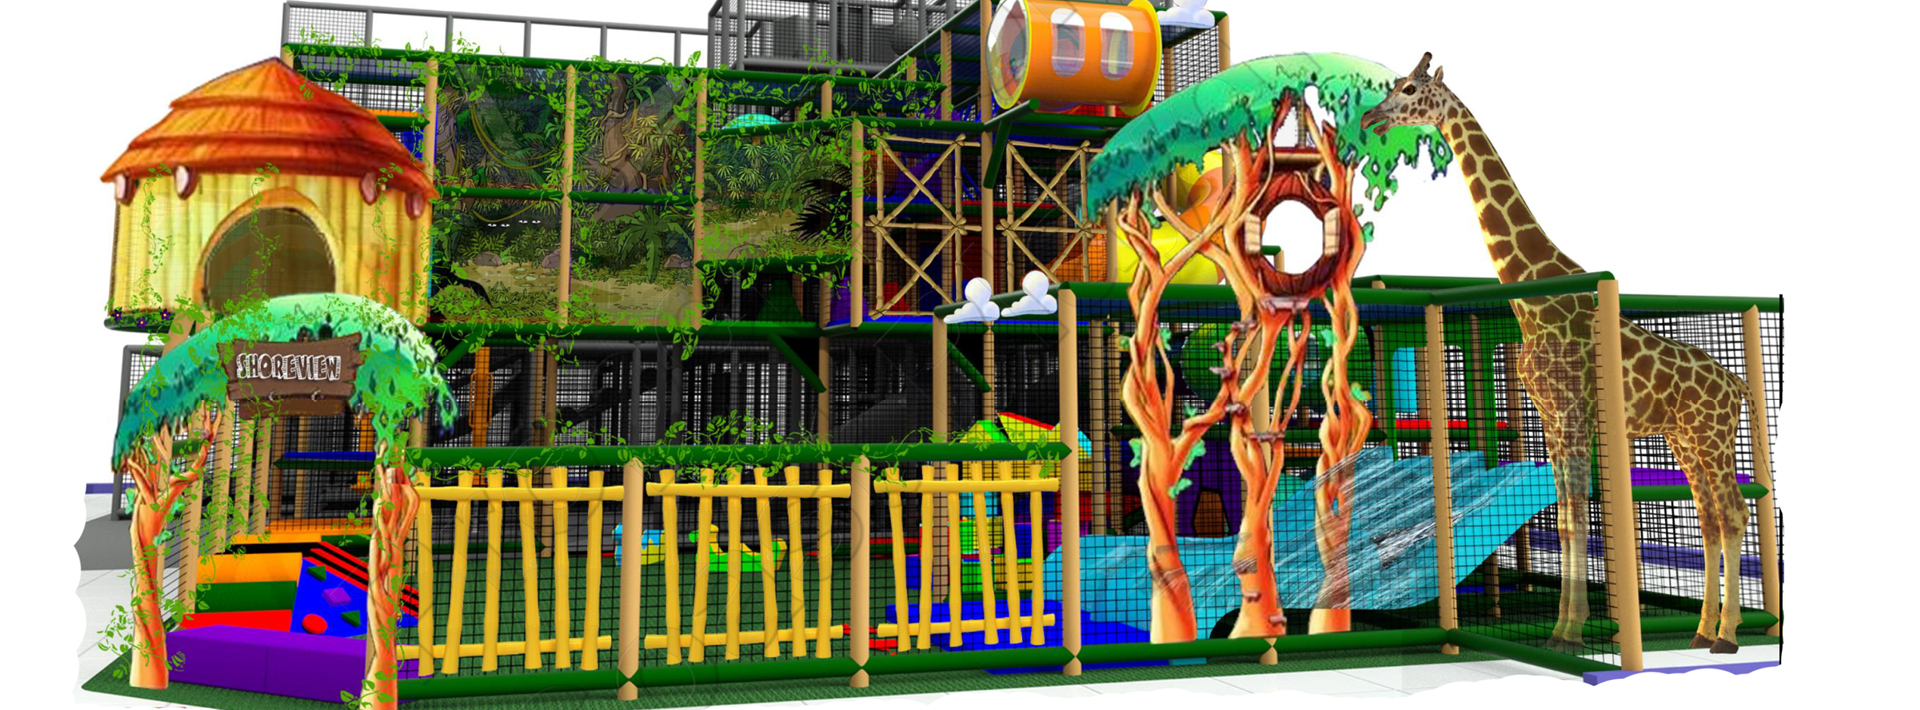 playground expansion rendering